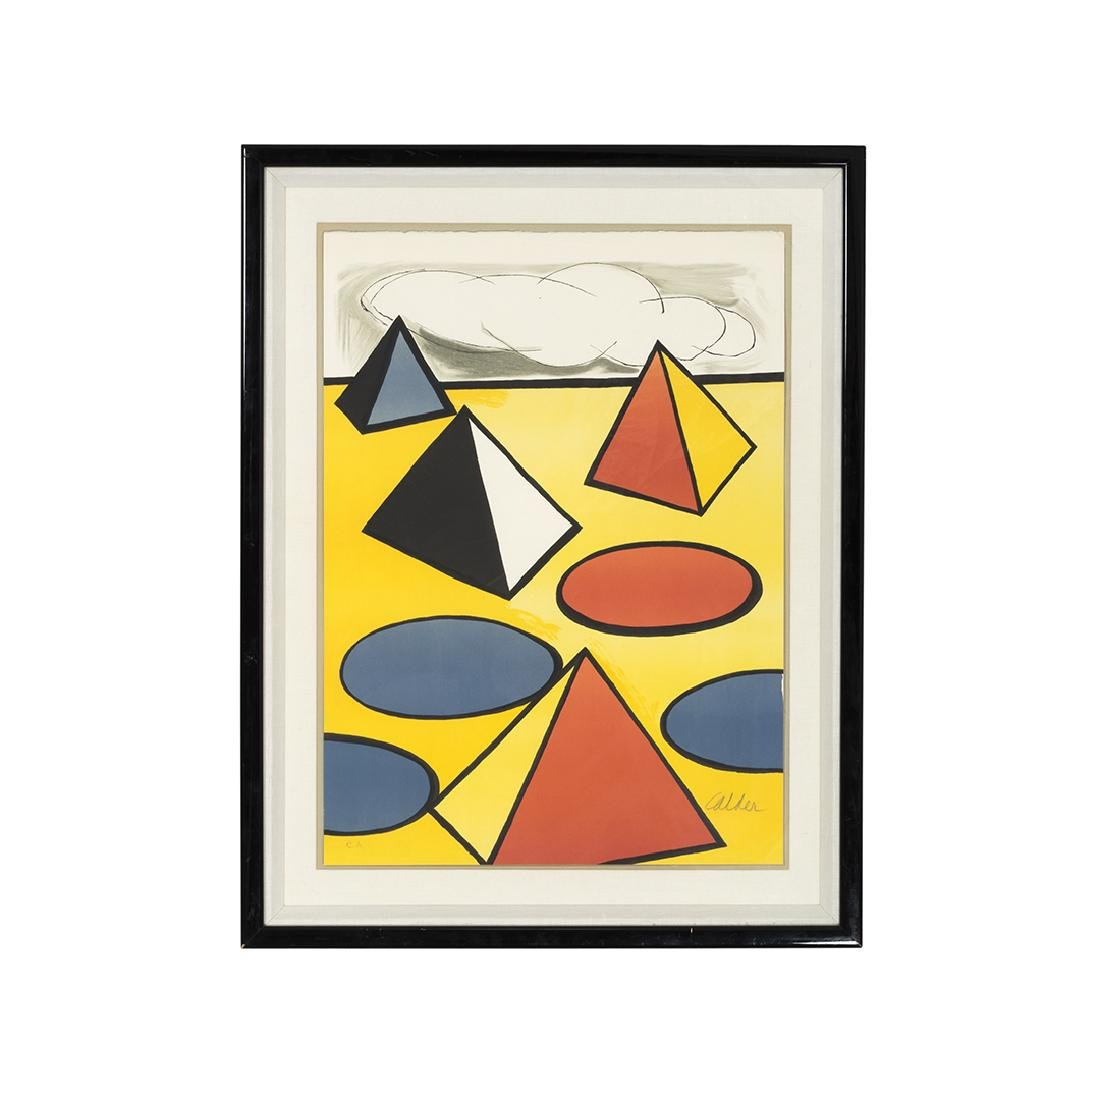 Alexander Calder Homage to the Pyramids